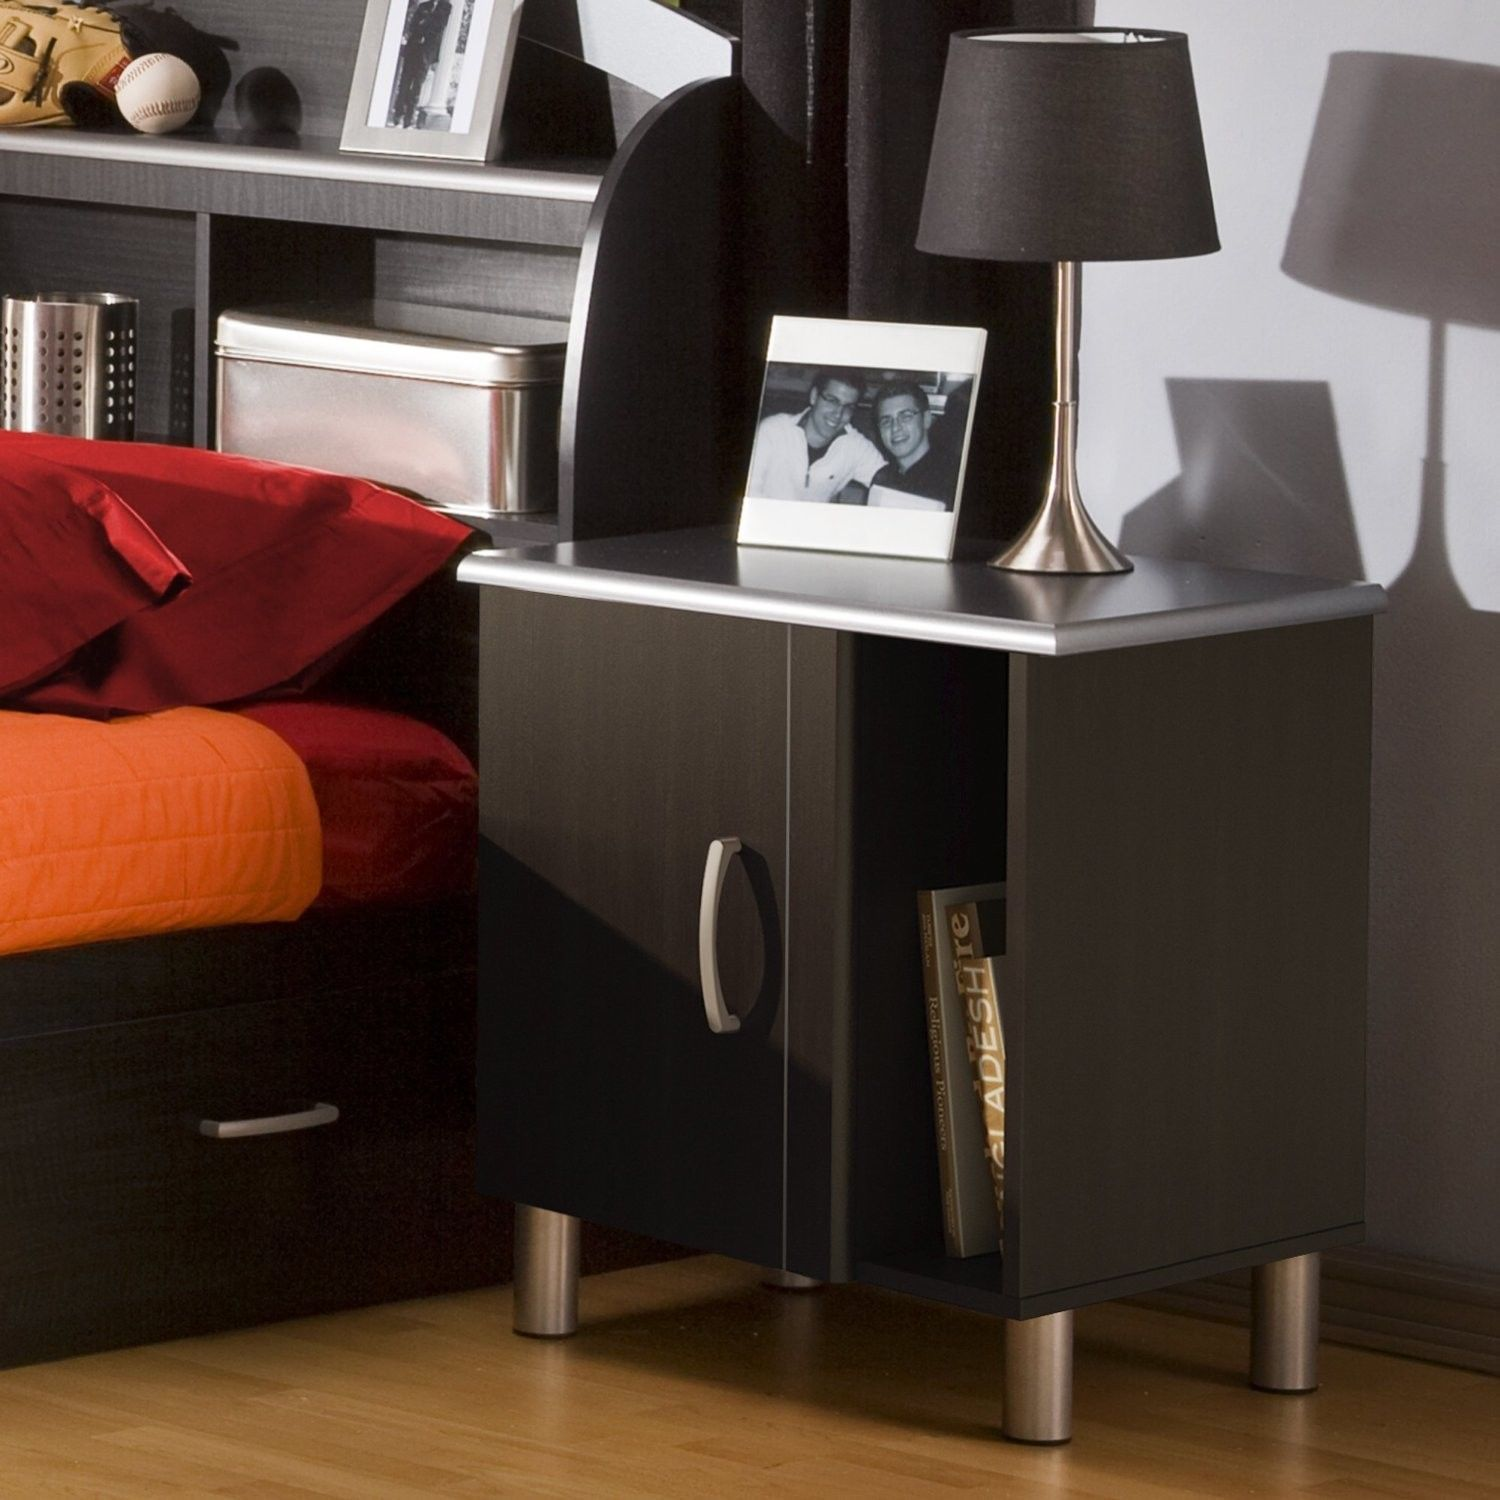 Bedroom Night Stand Modern Style Black Charcoal Storage Shelf Bedside Furniture Nightstands